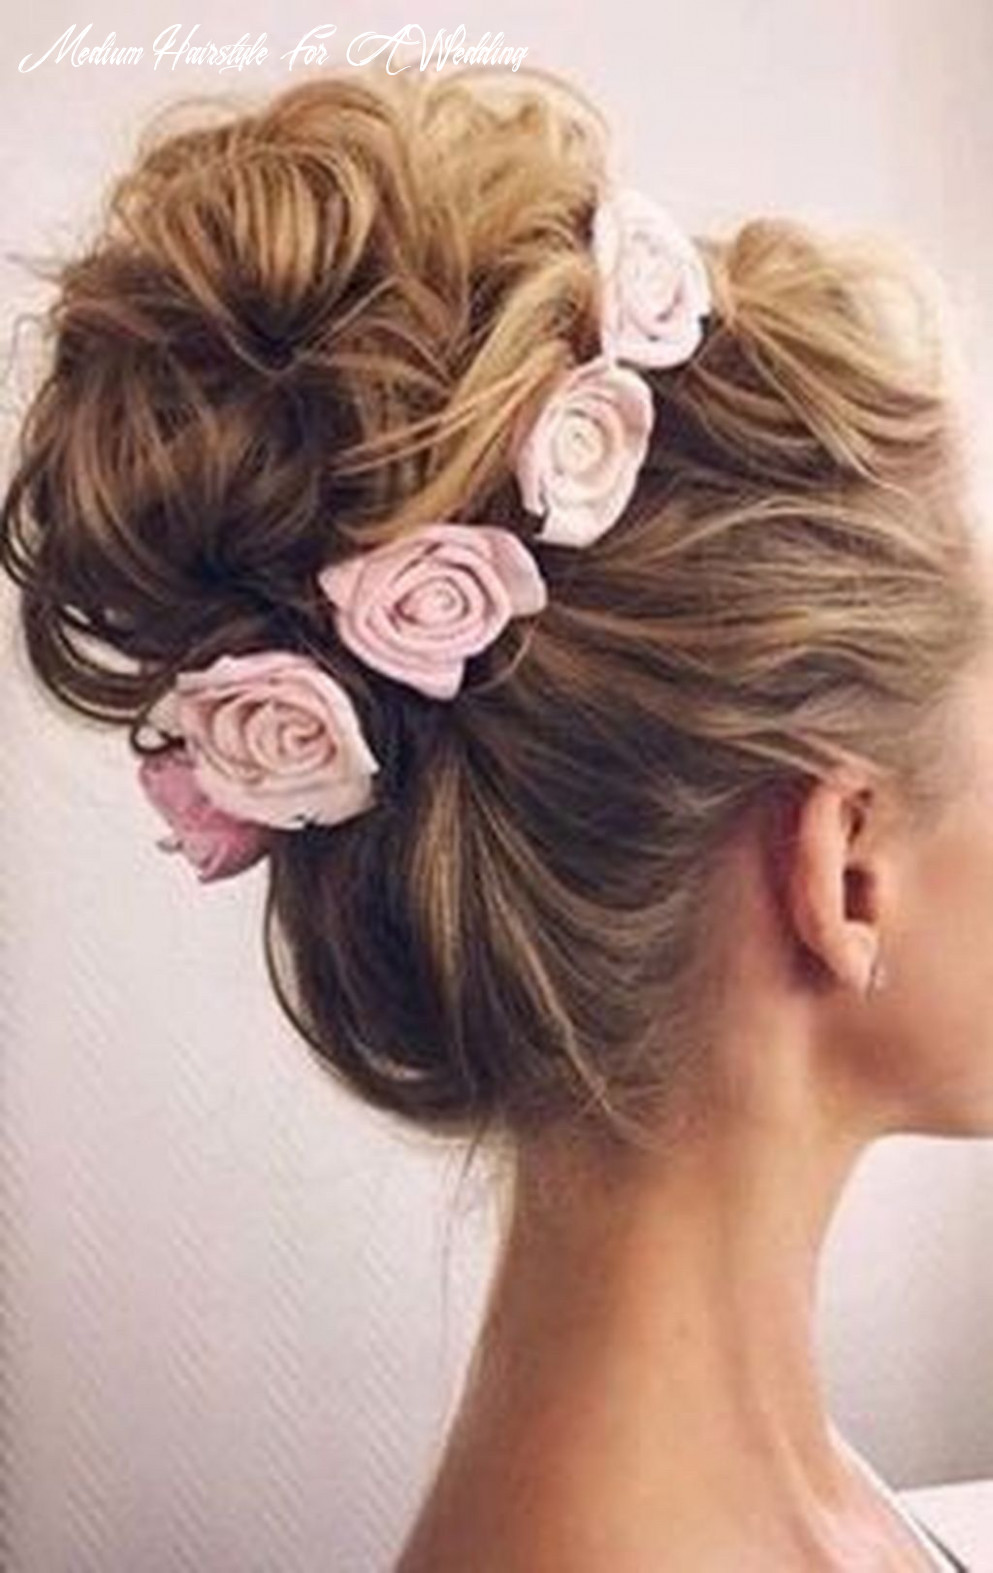 11 amazing wedding hairstyles for medium hair to makes you